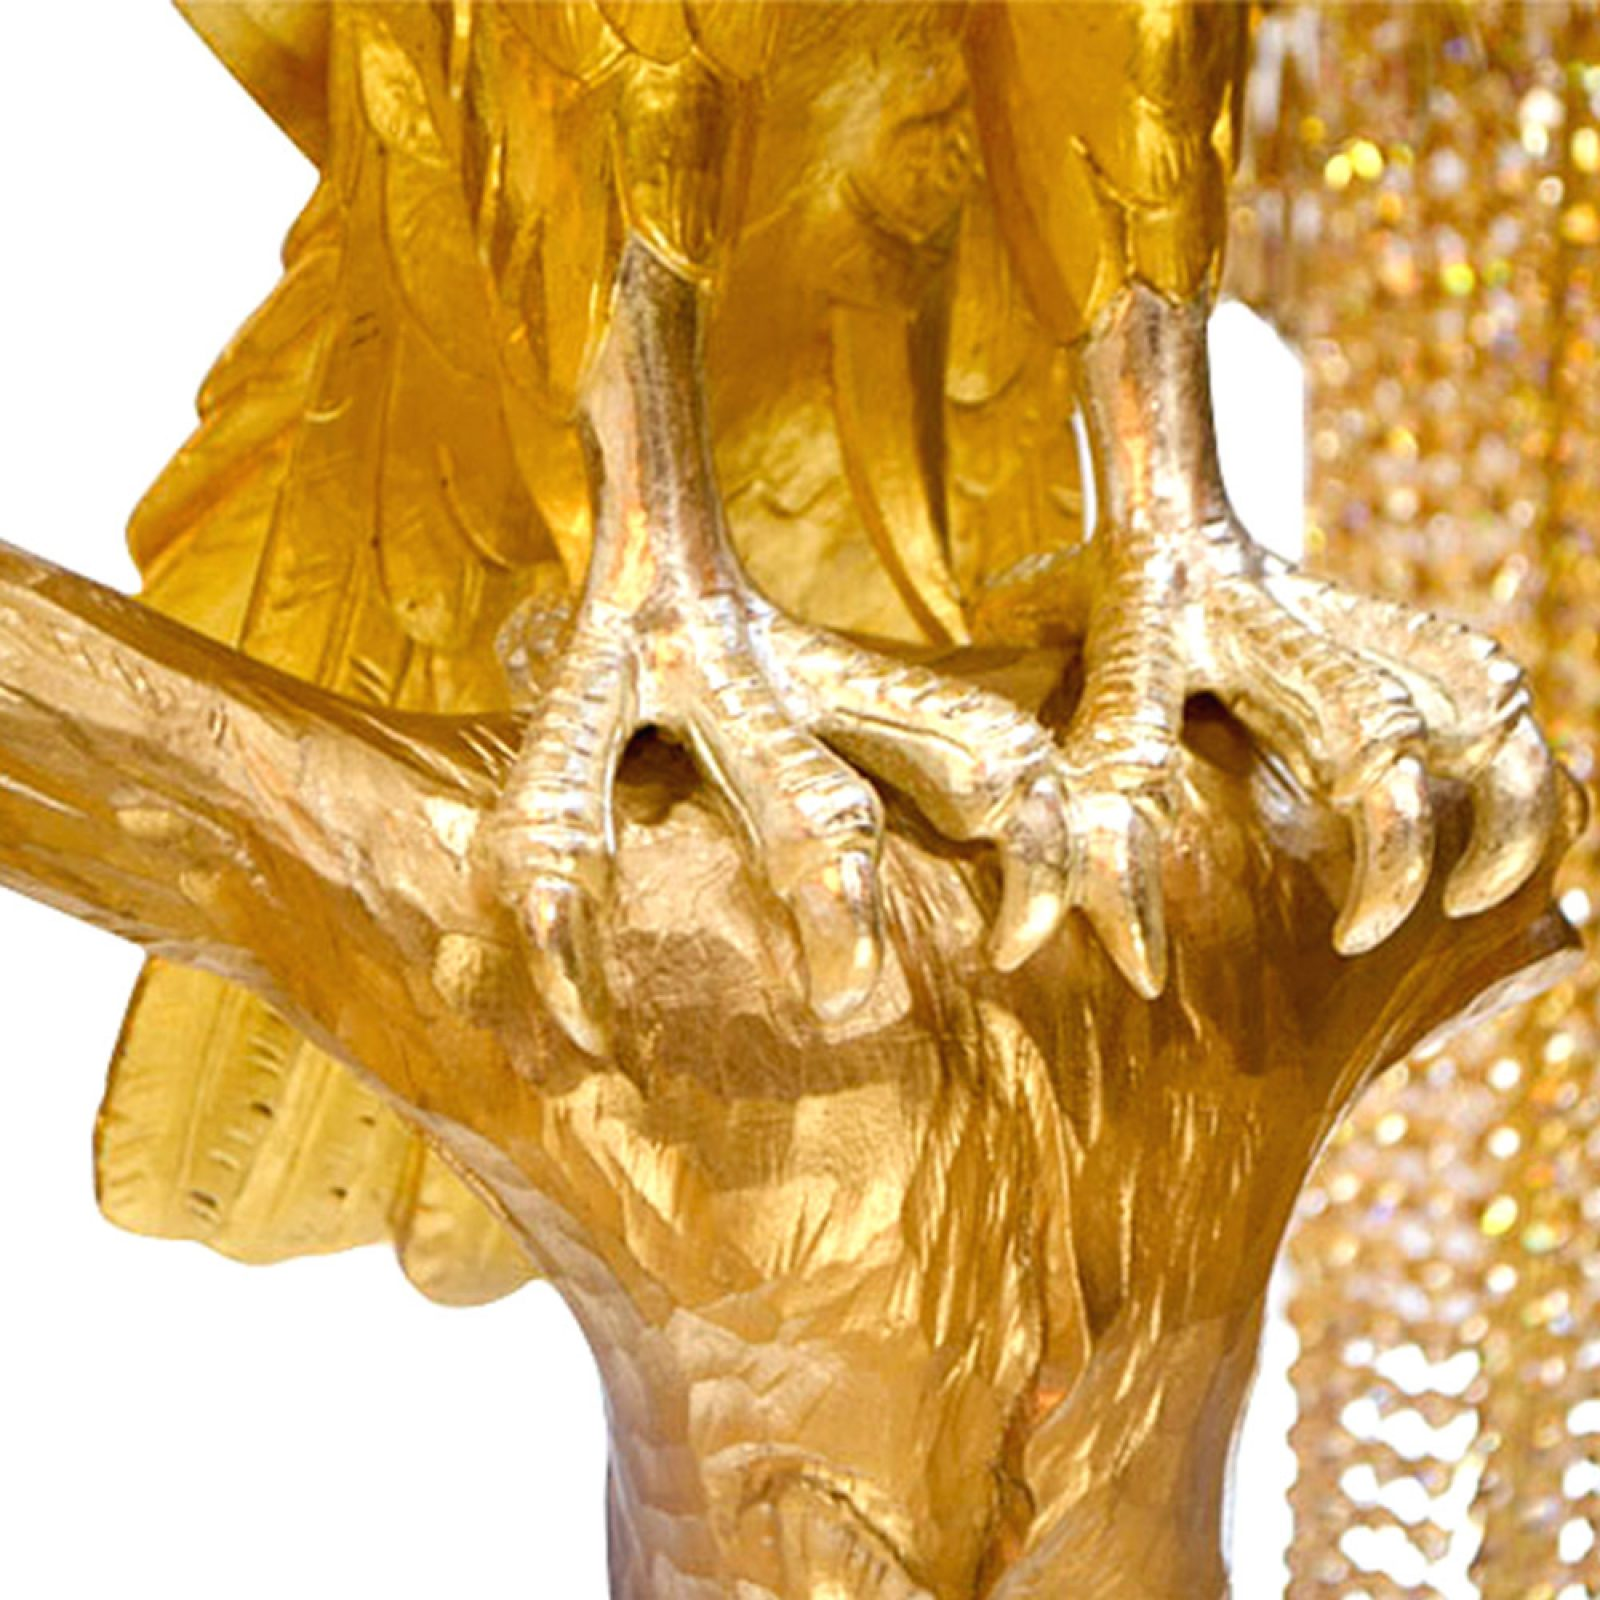 Kaddour - the sculpture by hand with various shades of 24-karat gold leafs | Natalis Luxus